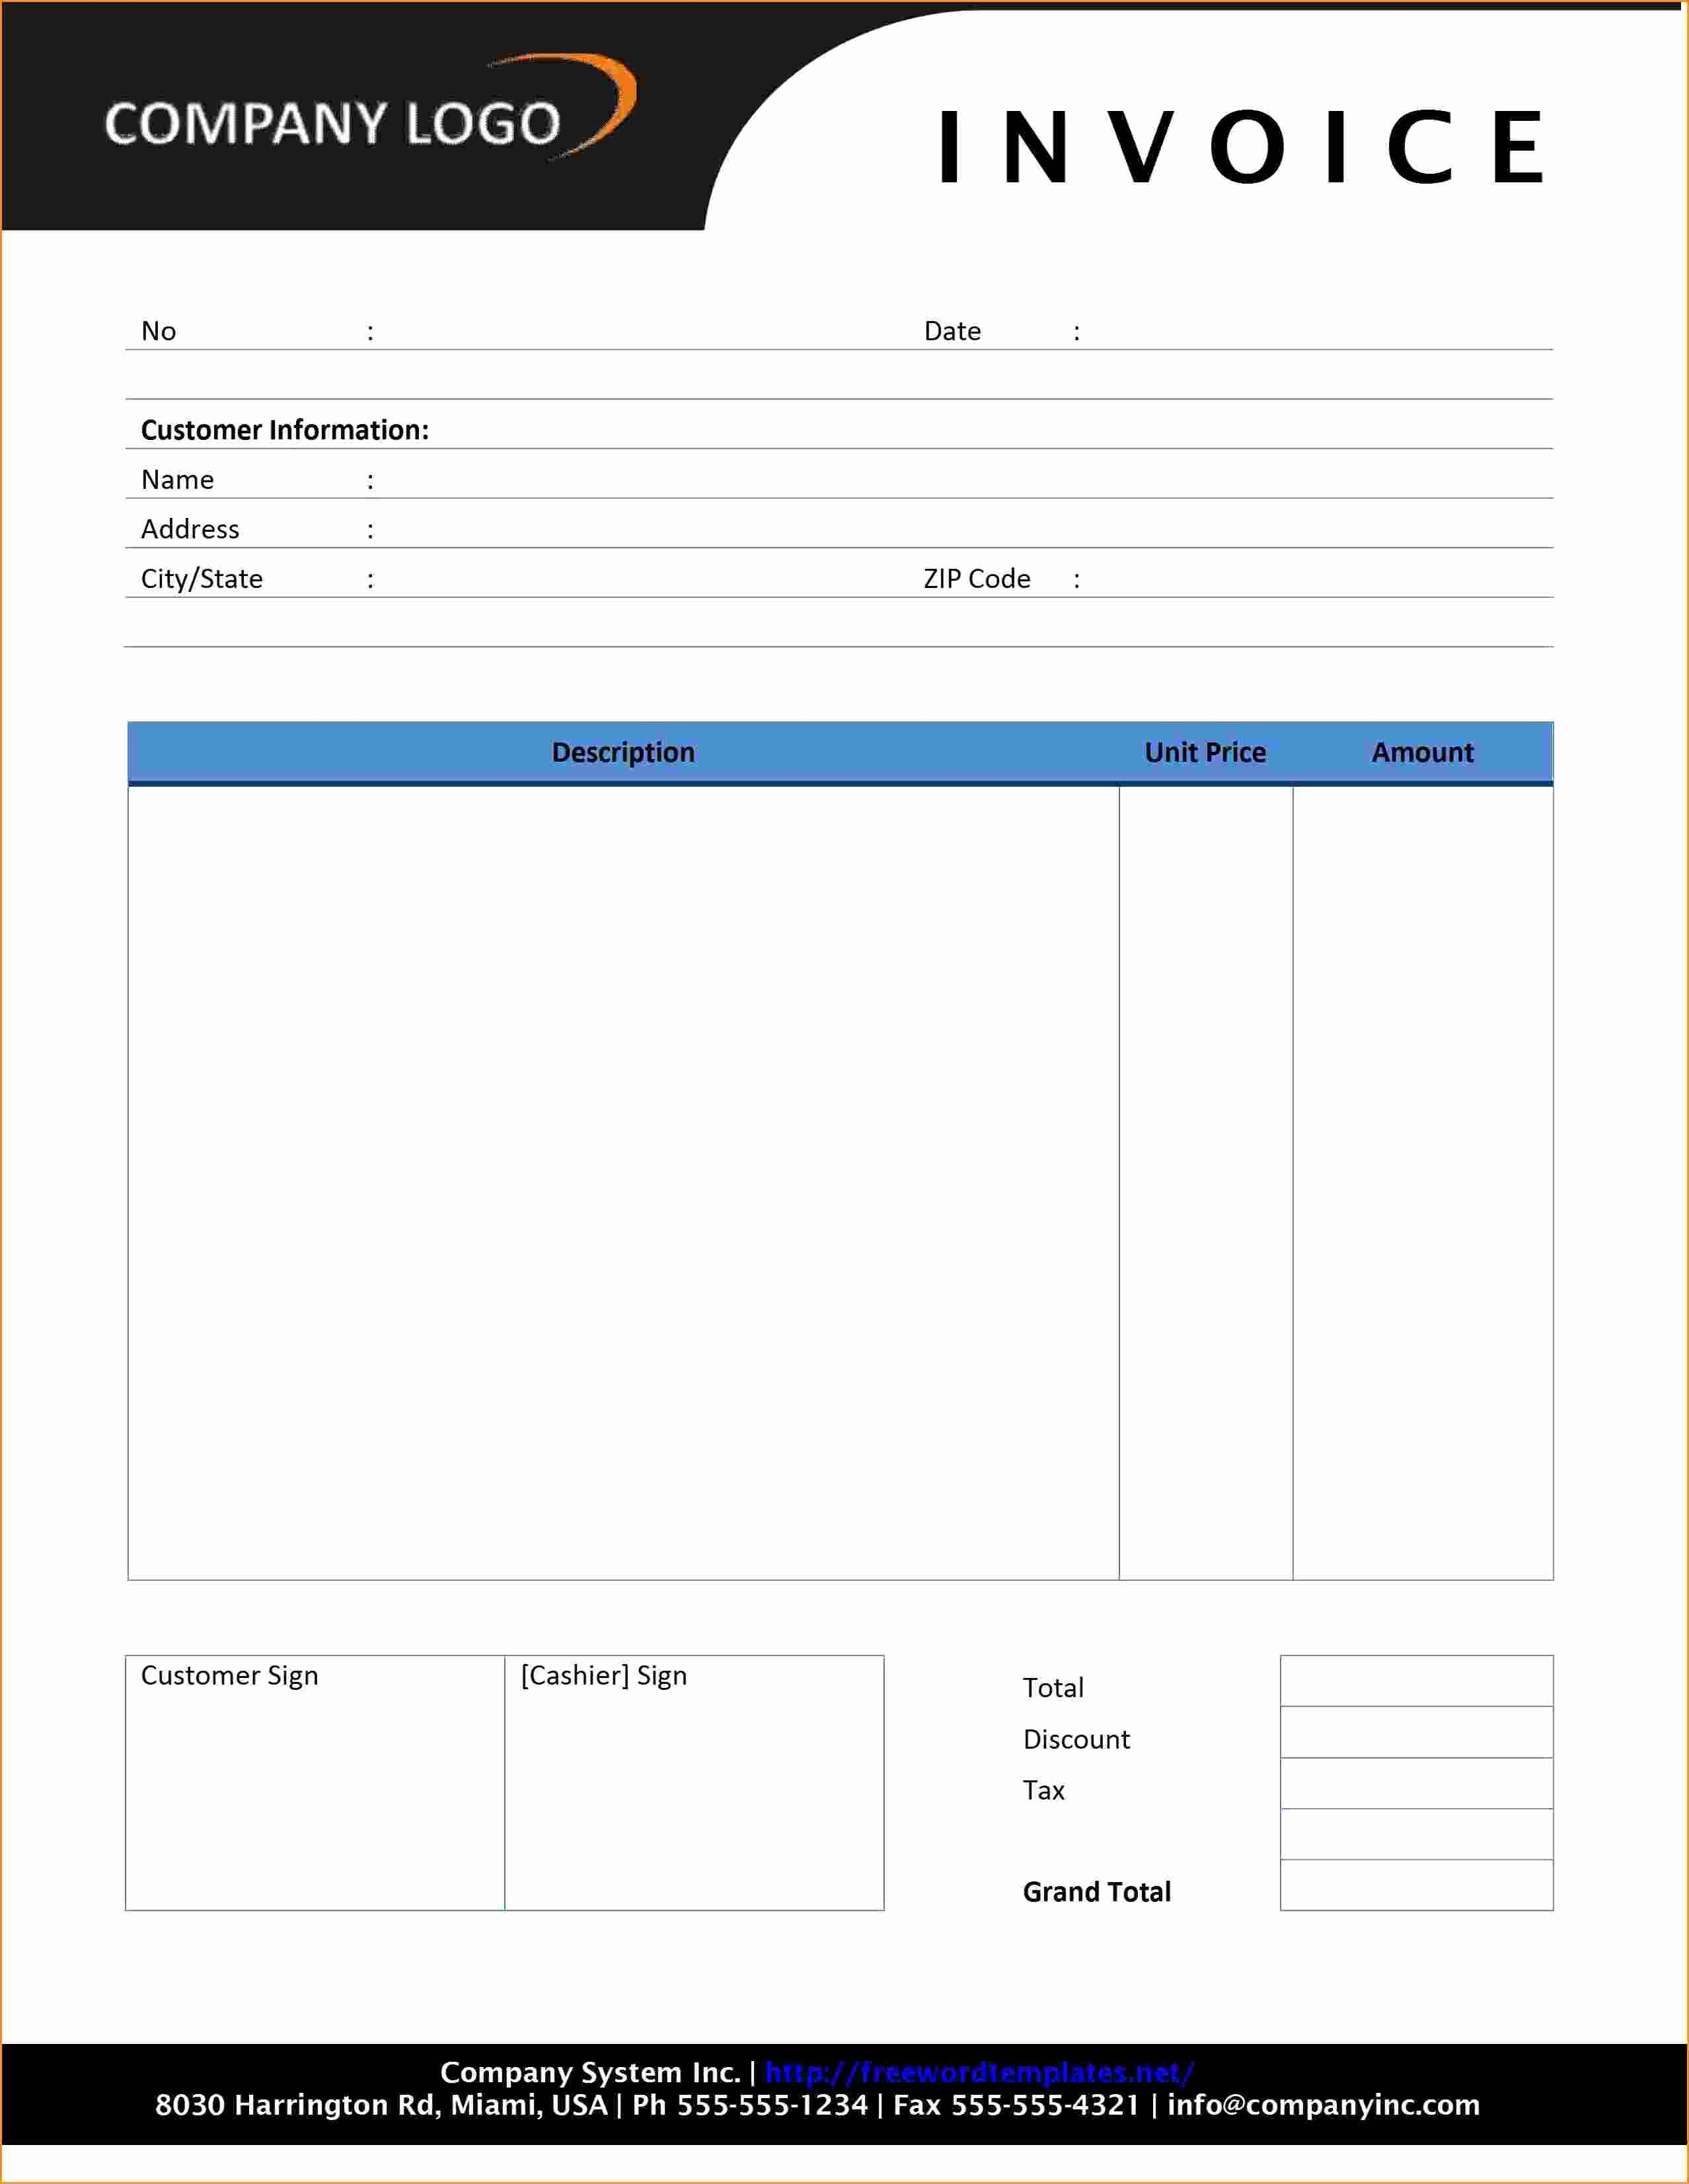 Invoice Template for Microsoft Word Inspirational 12 Invoice Template Microsoft Word